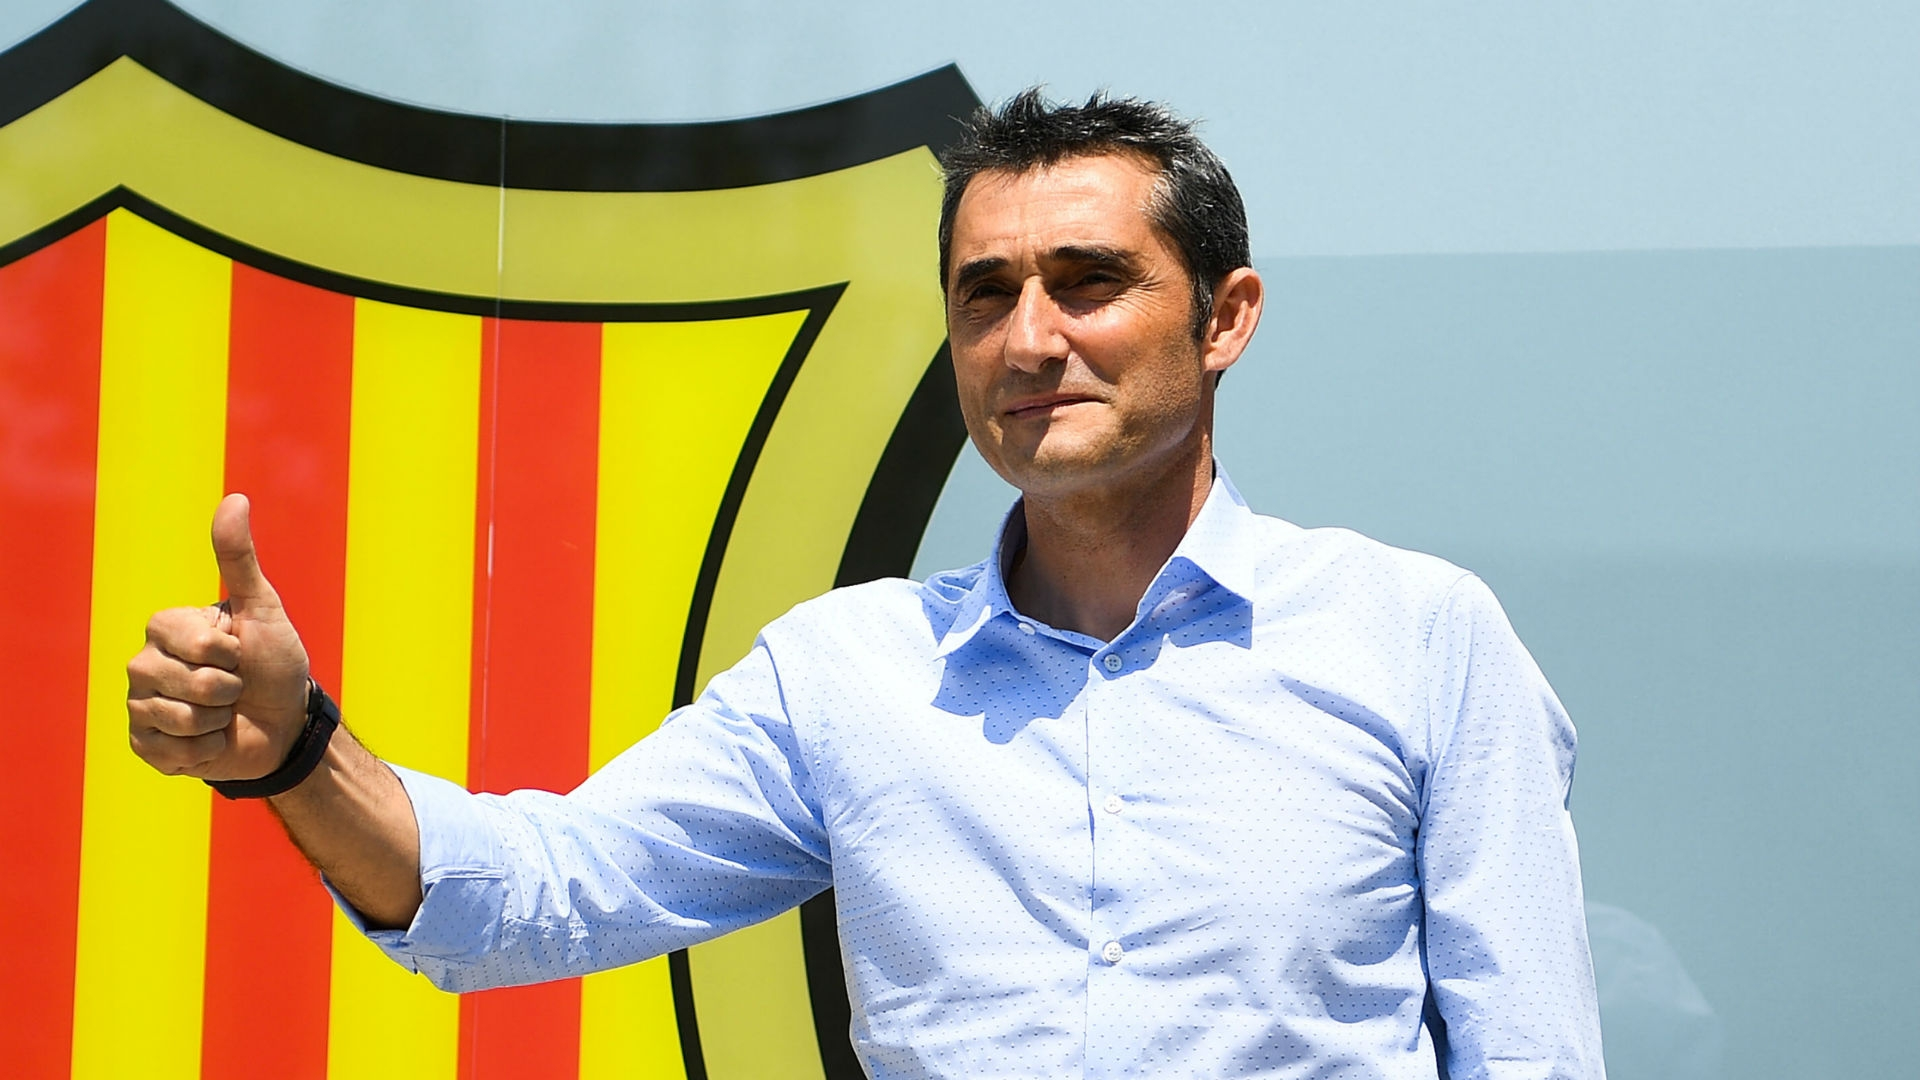 Ernesto Valverde has been presented as Barcelona's new manager